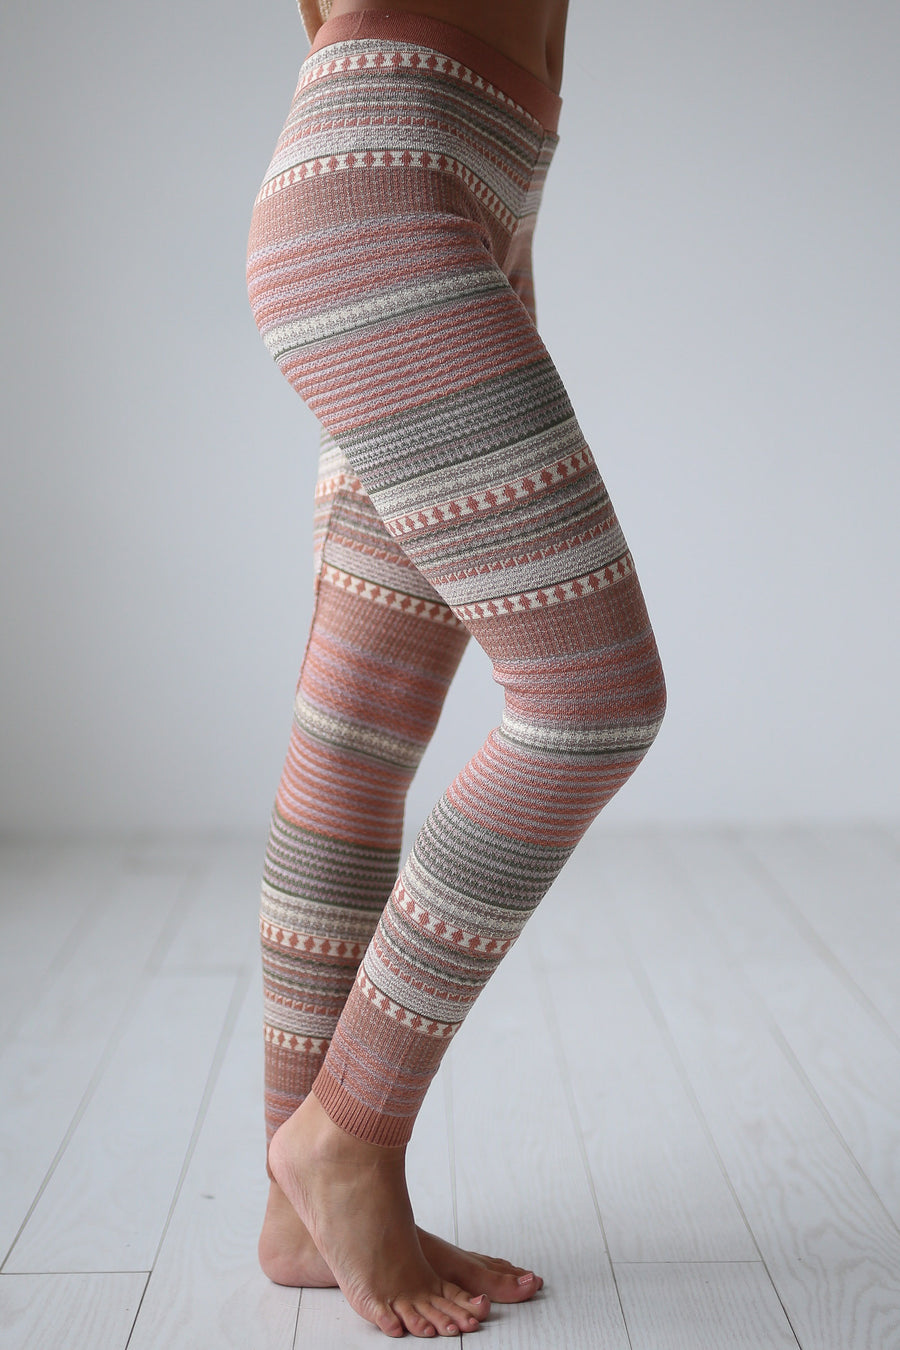 Cuddled Up Knit Leggings - Dusty Rose printed leggings, cute pajama pants, Closet Candy Boutique 1